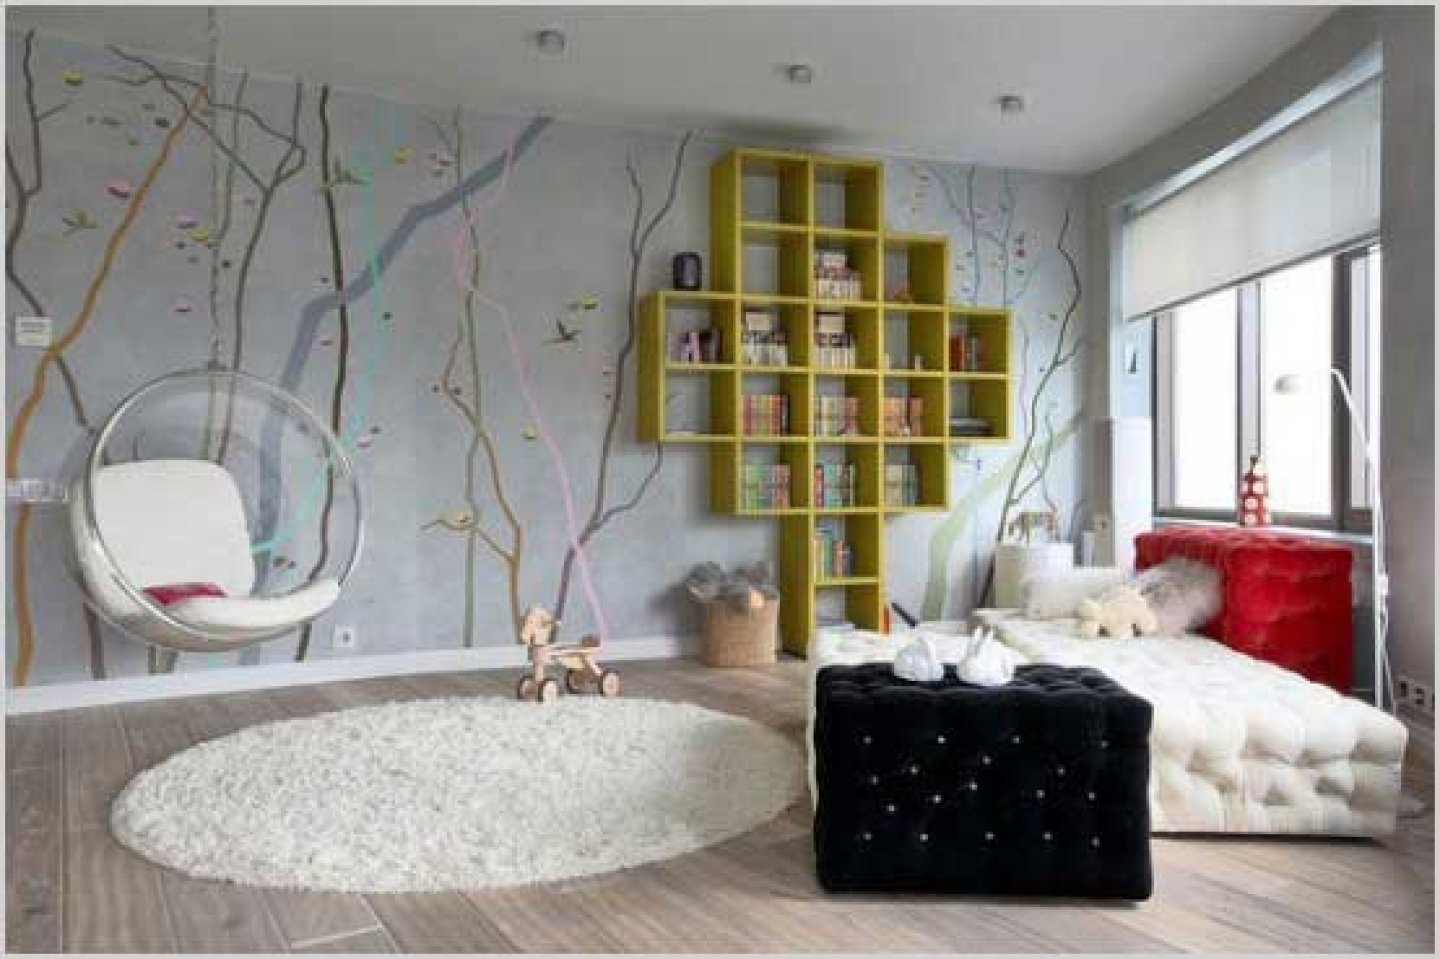 10 Stylish Cool Room Ideas For Teenage Girls beautiful some drower room decor for teen girls wall message as wall 2020